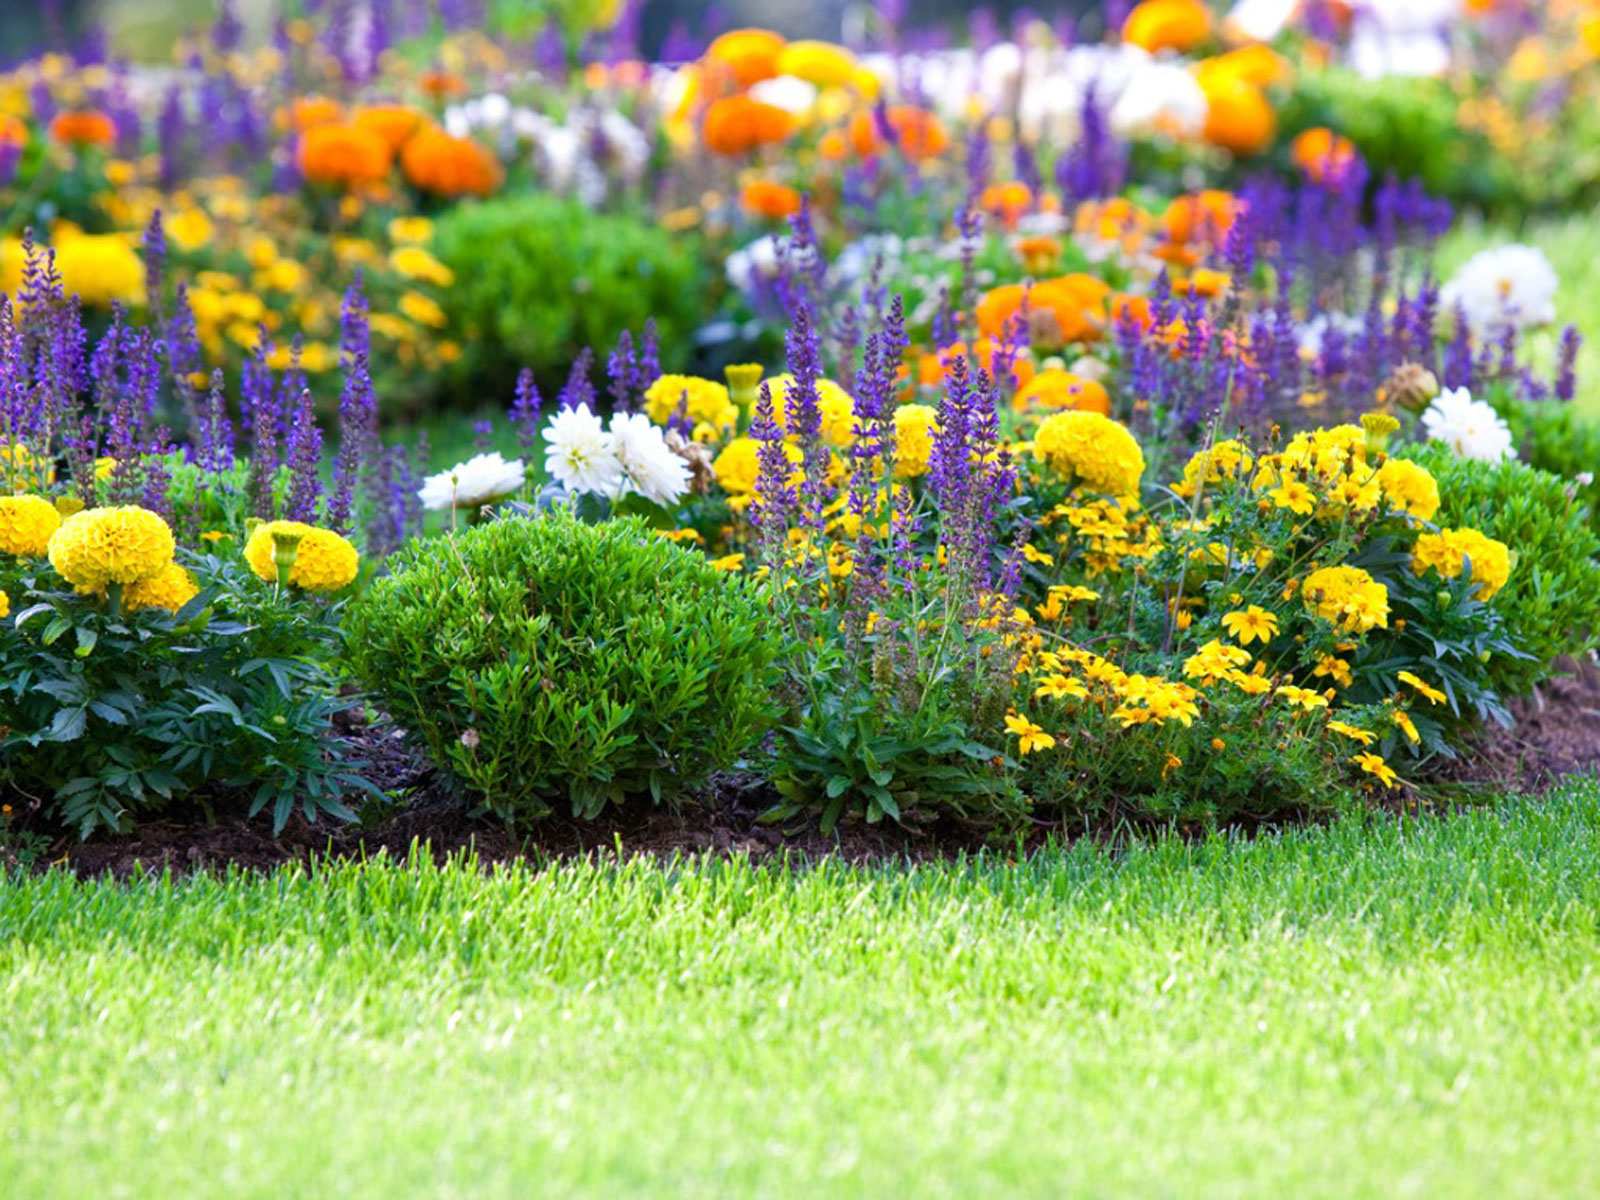 Flower Gardening How To Start A Flower Garden